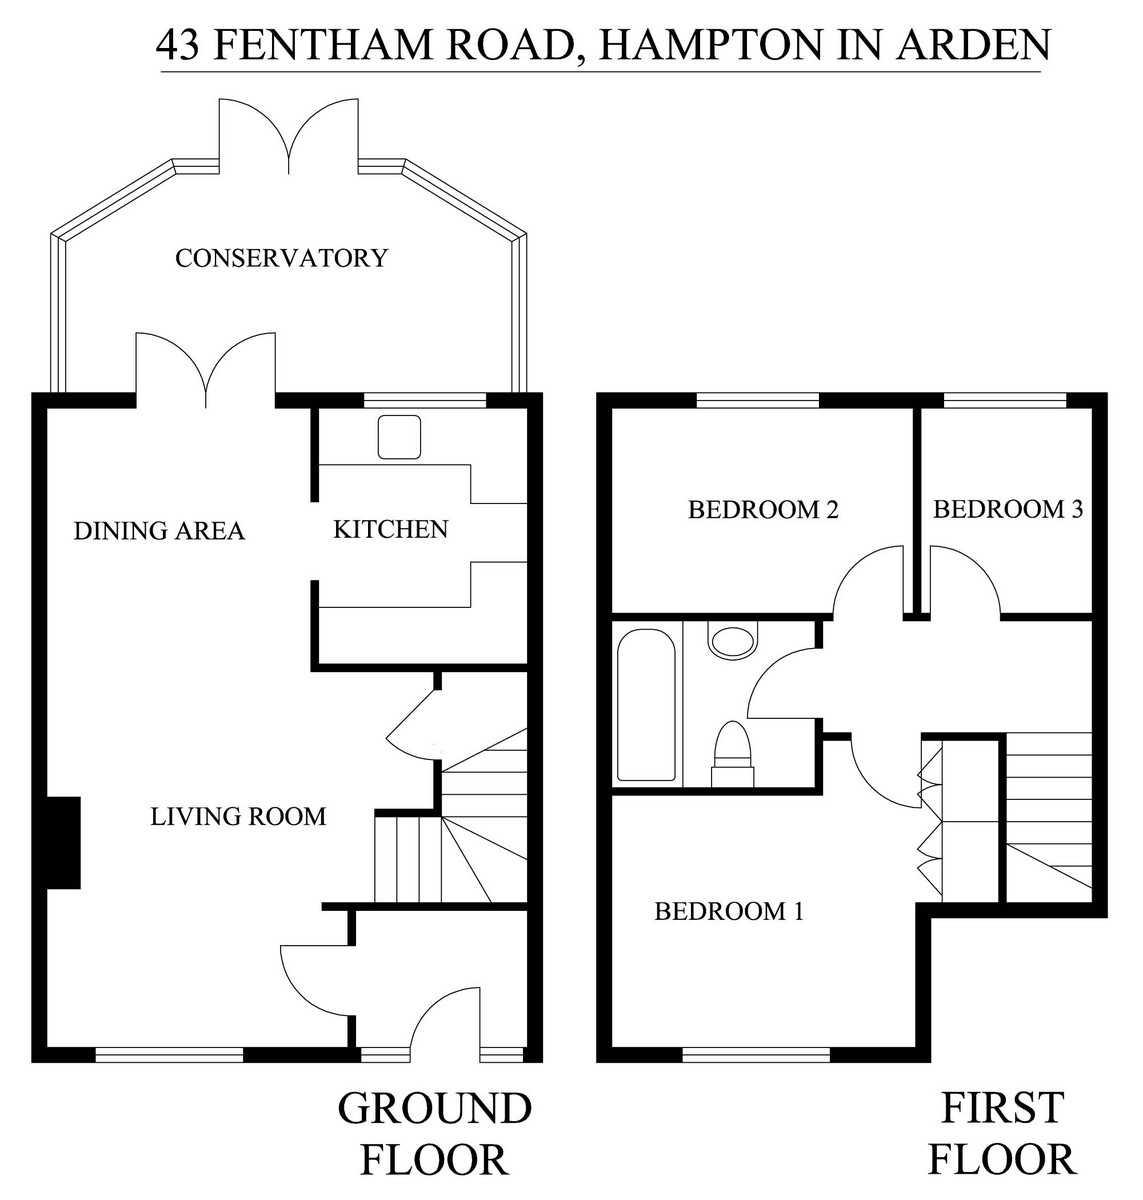 Fentham Road, Hampton in Arden, Solihull Floorplan